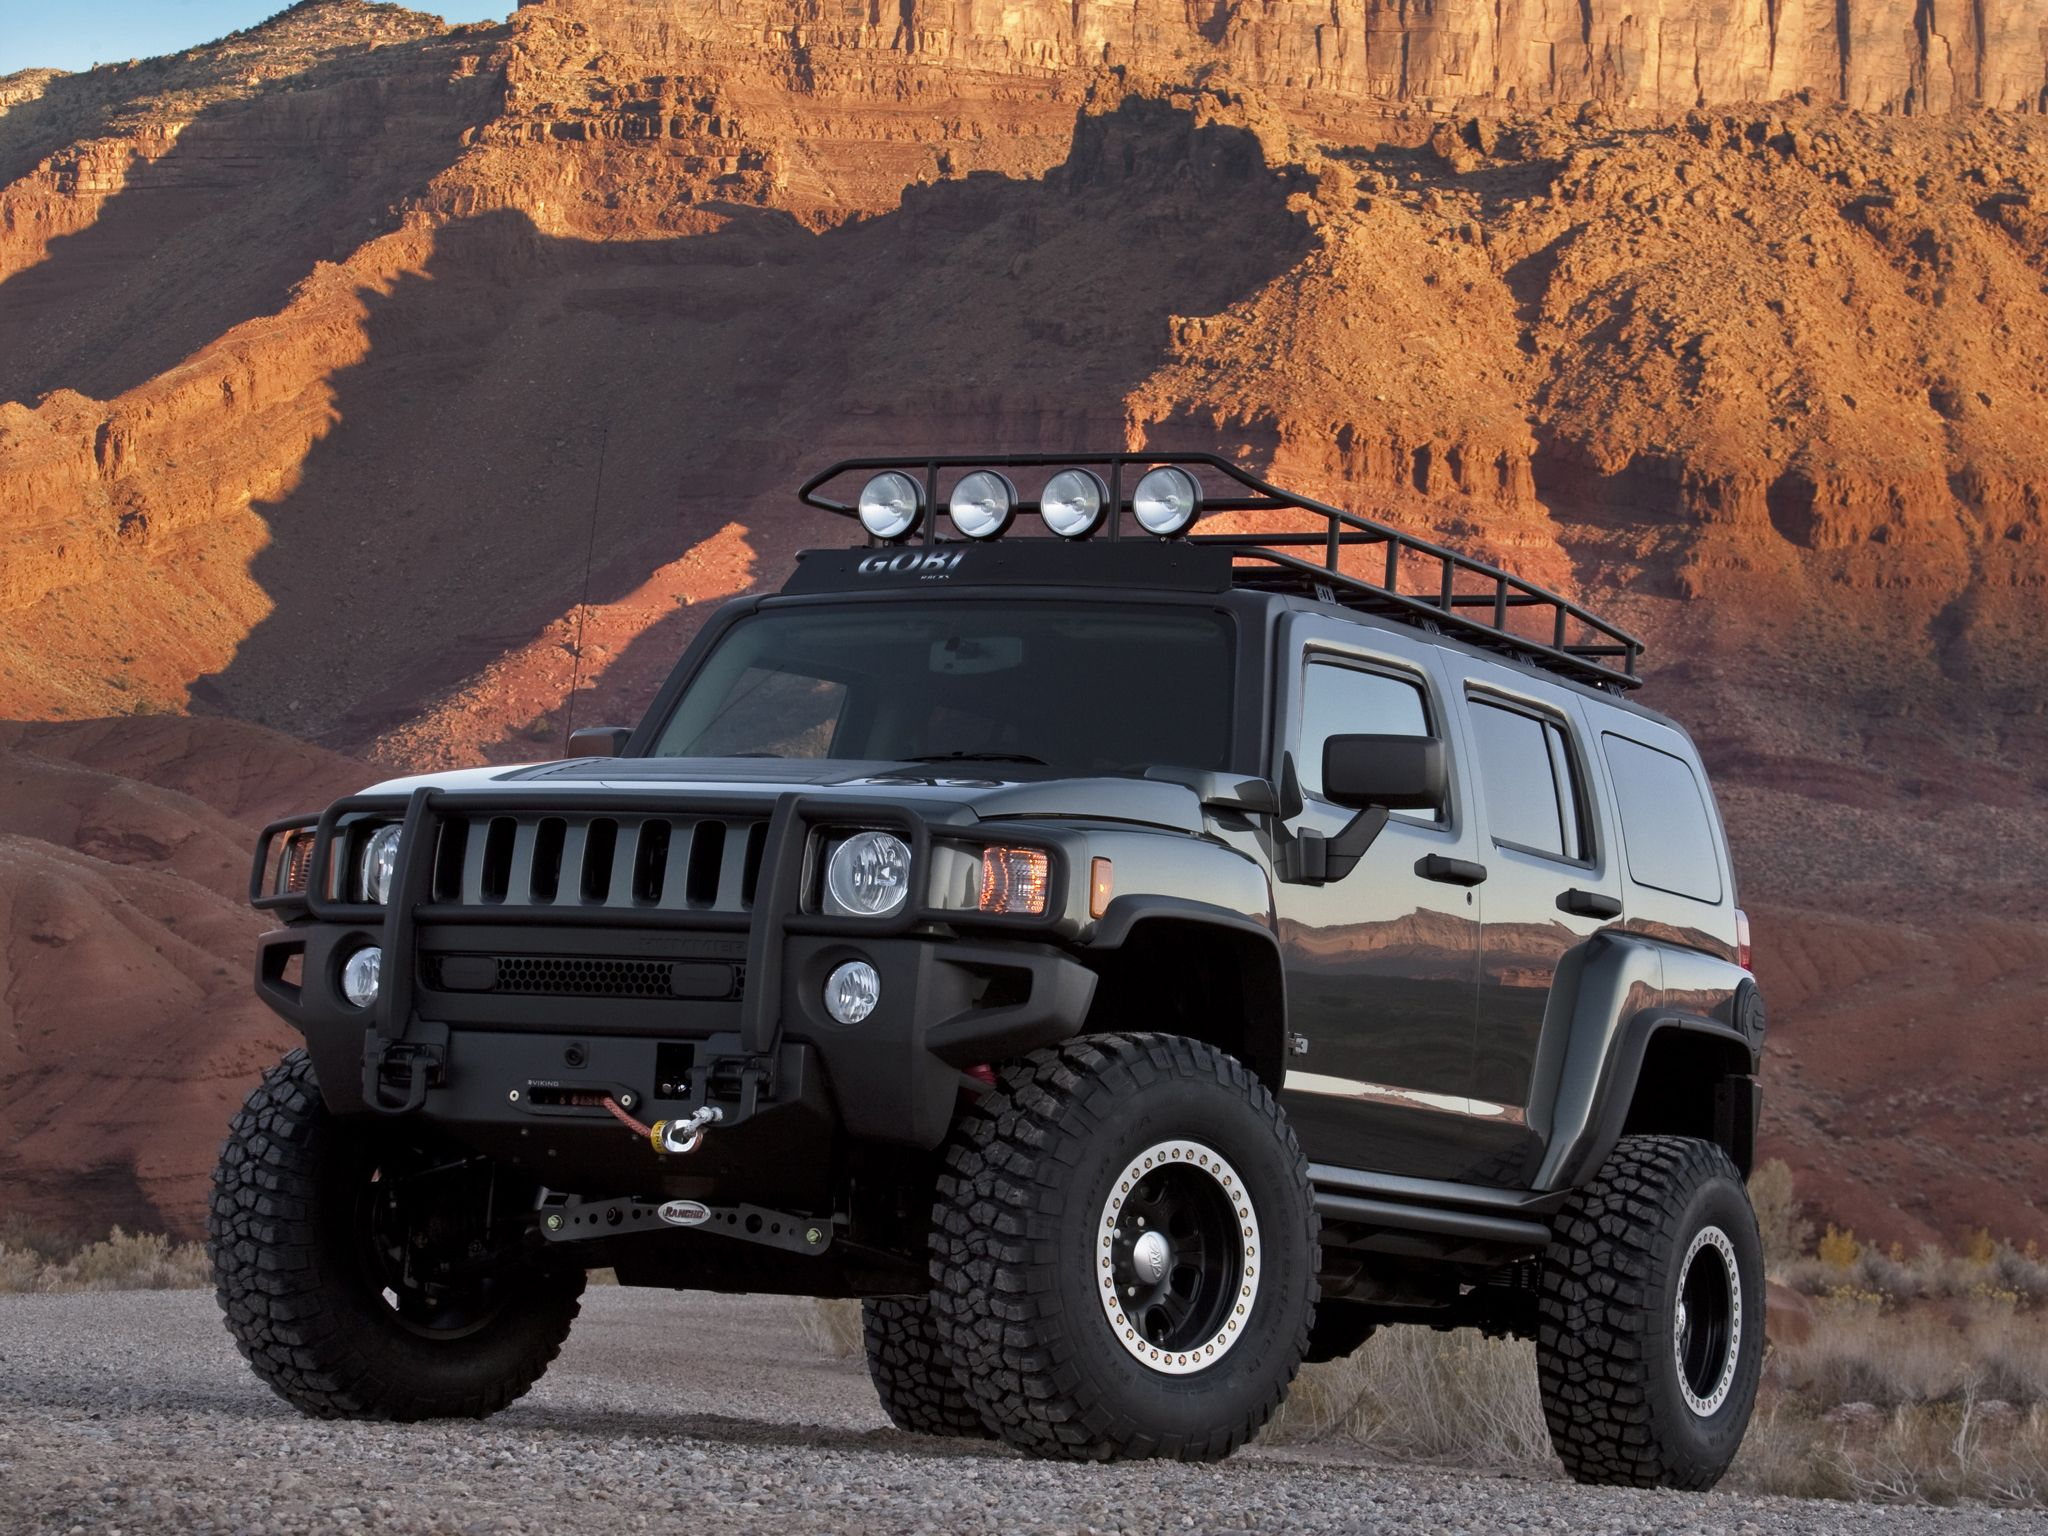 Pin By Joshua Schear On This Is Our Earth Hummer Hummer